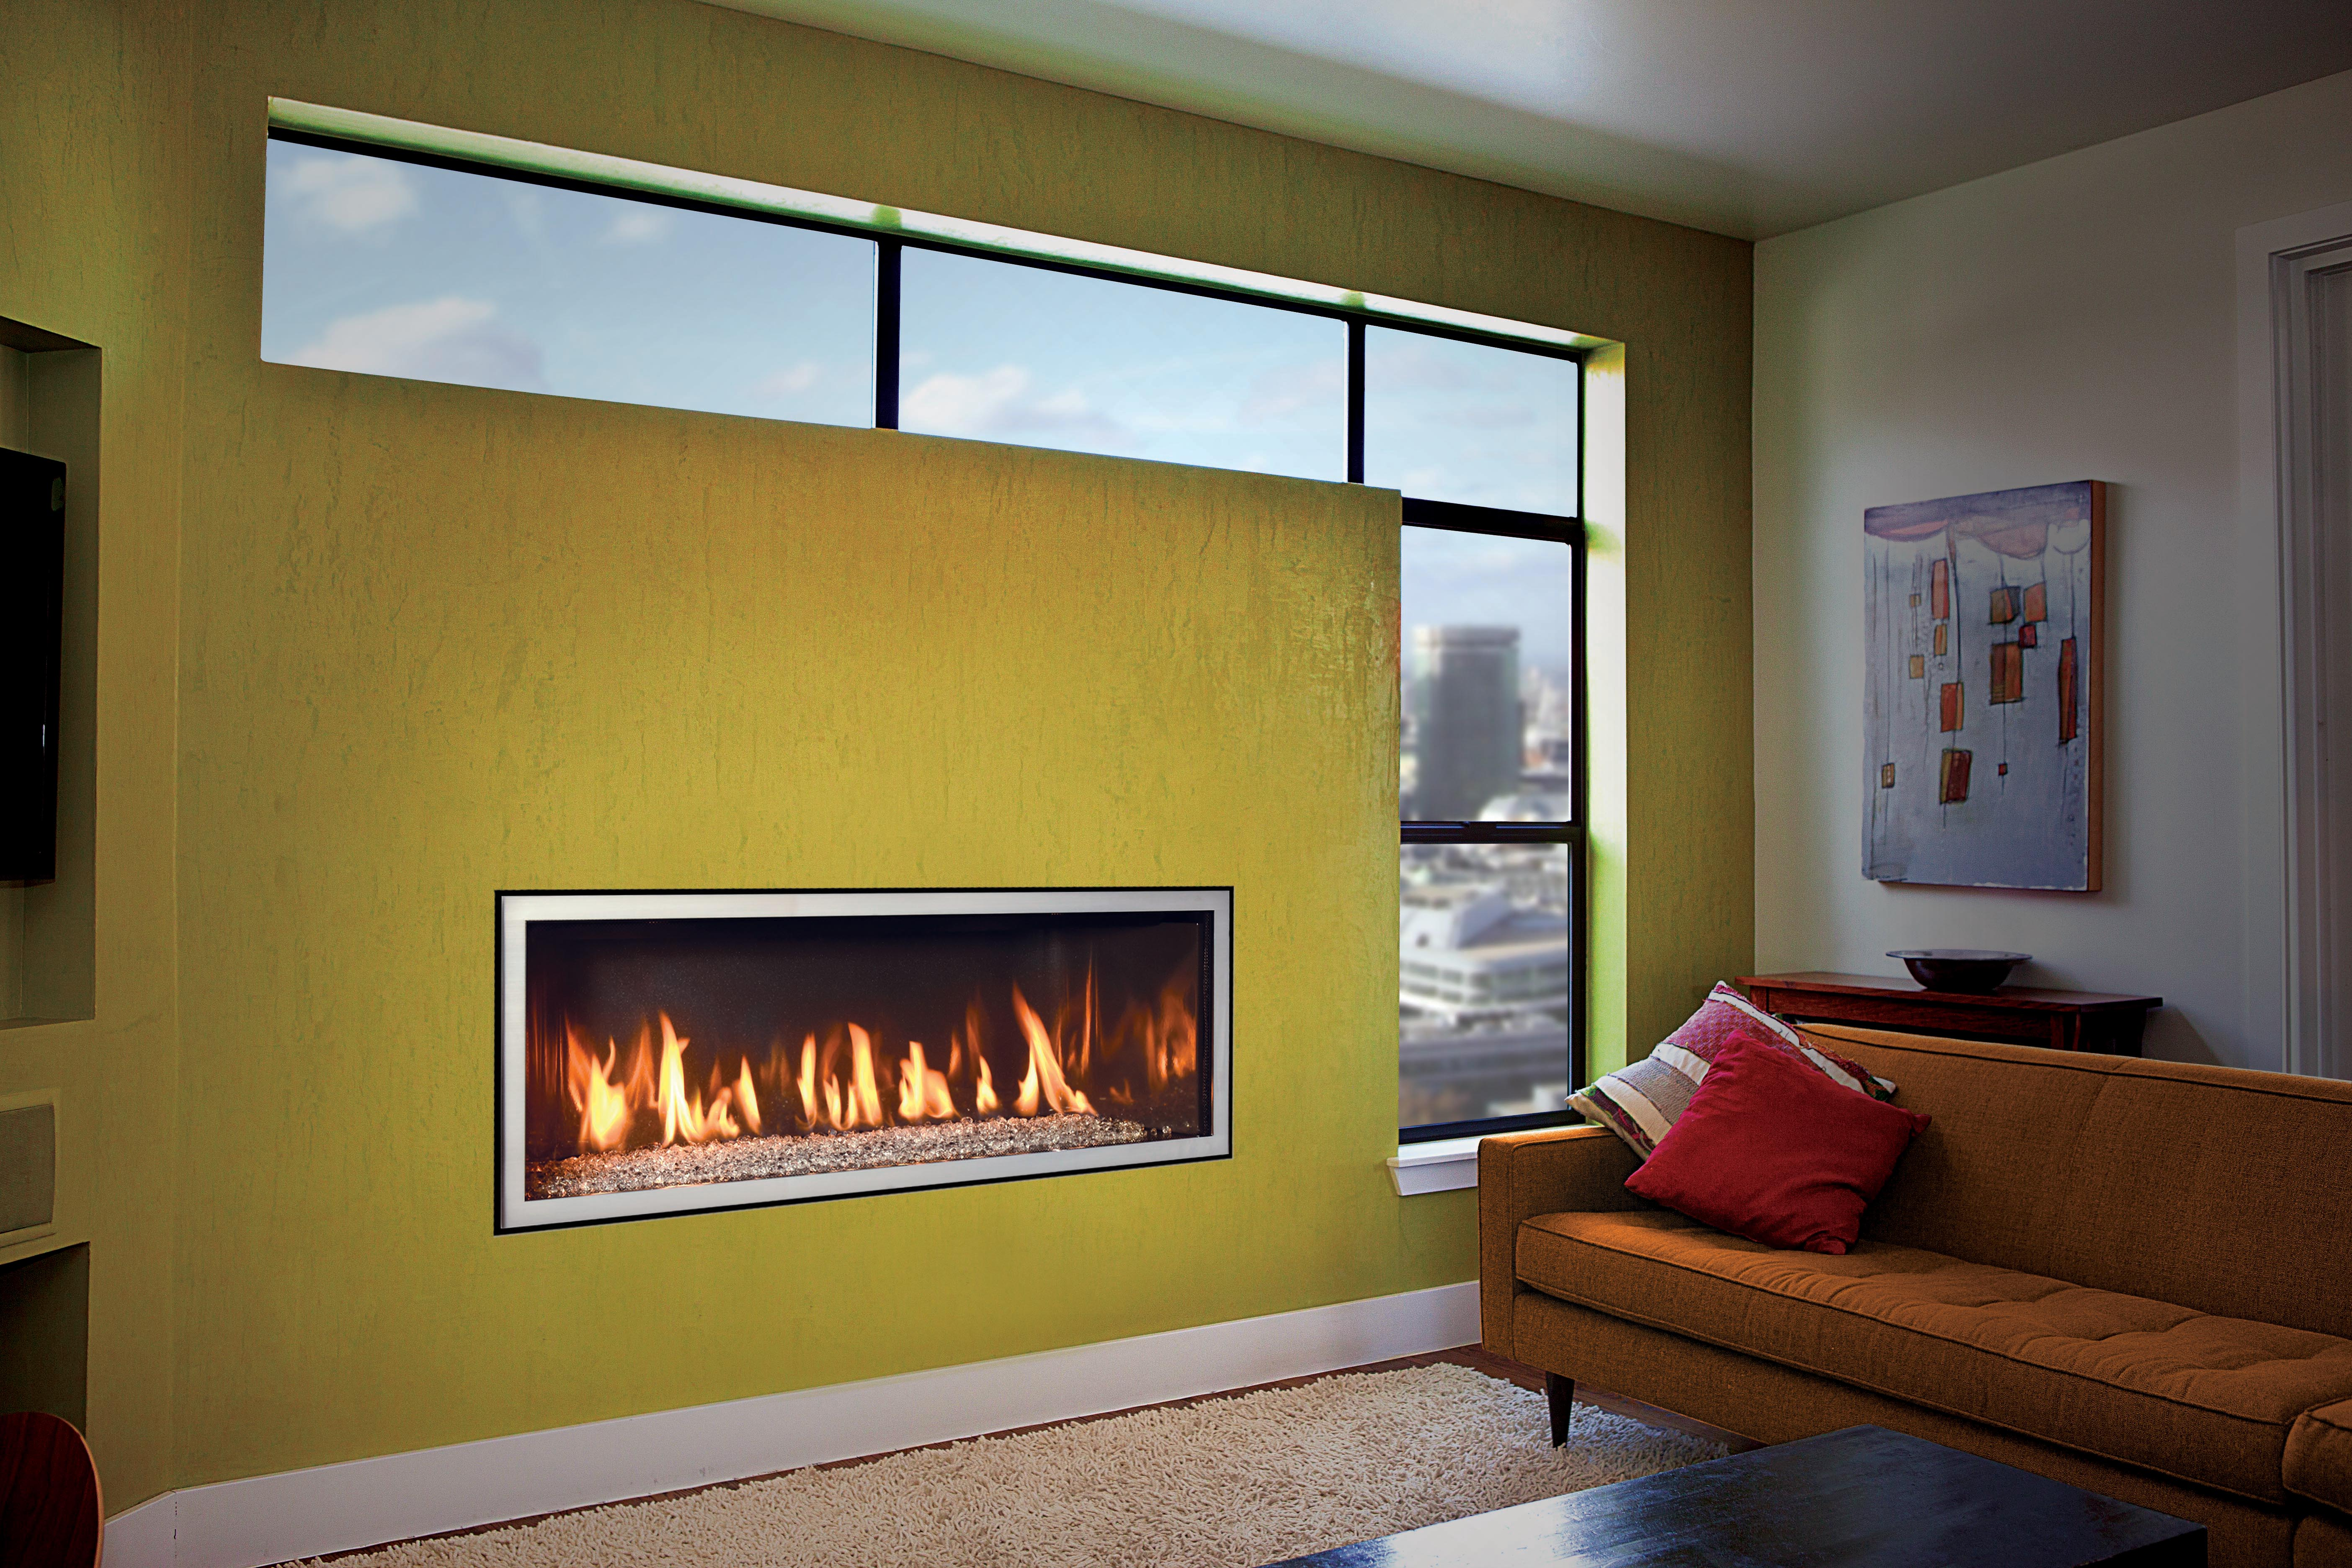 The Gift of Warmth - Lehrers Fireplace and Patio